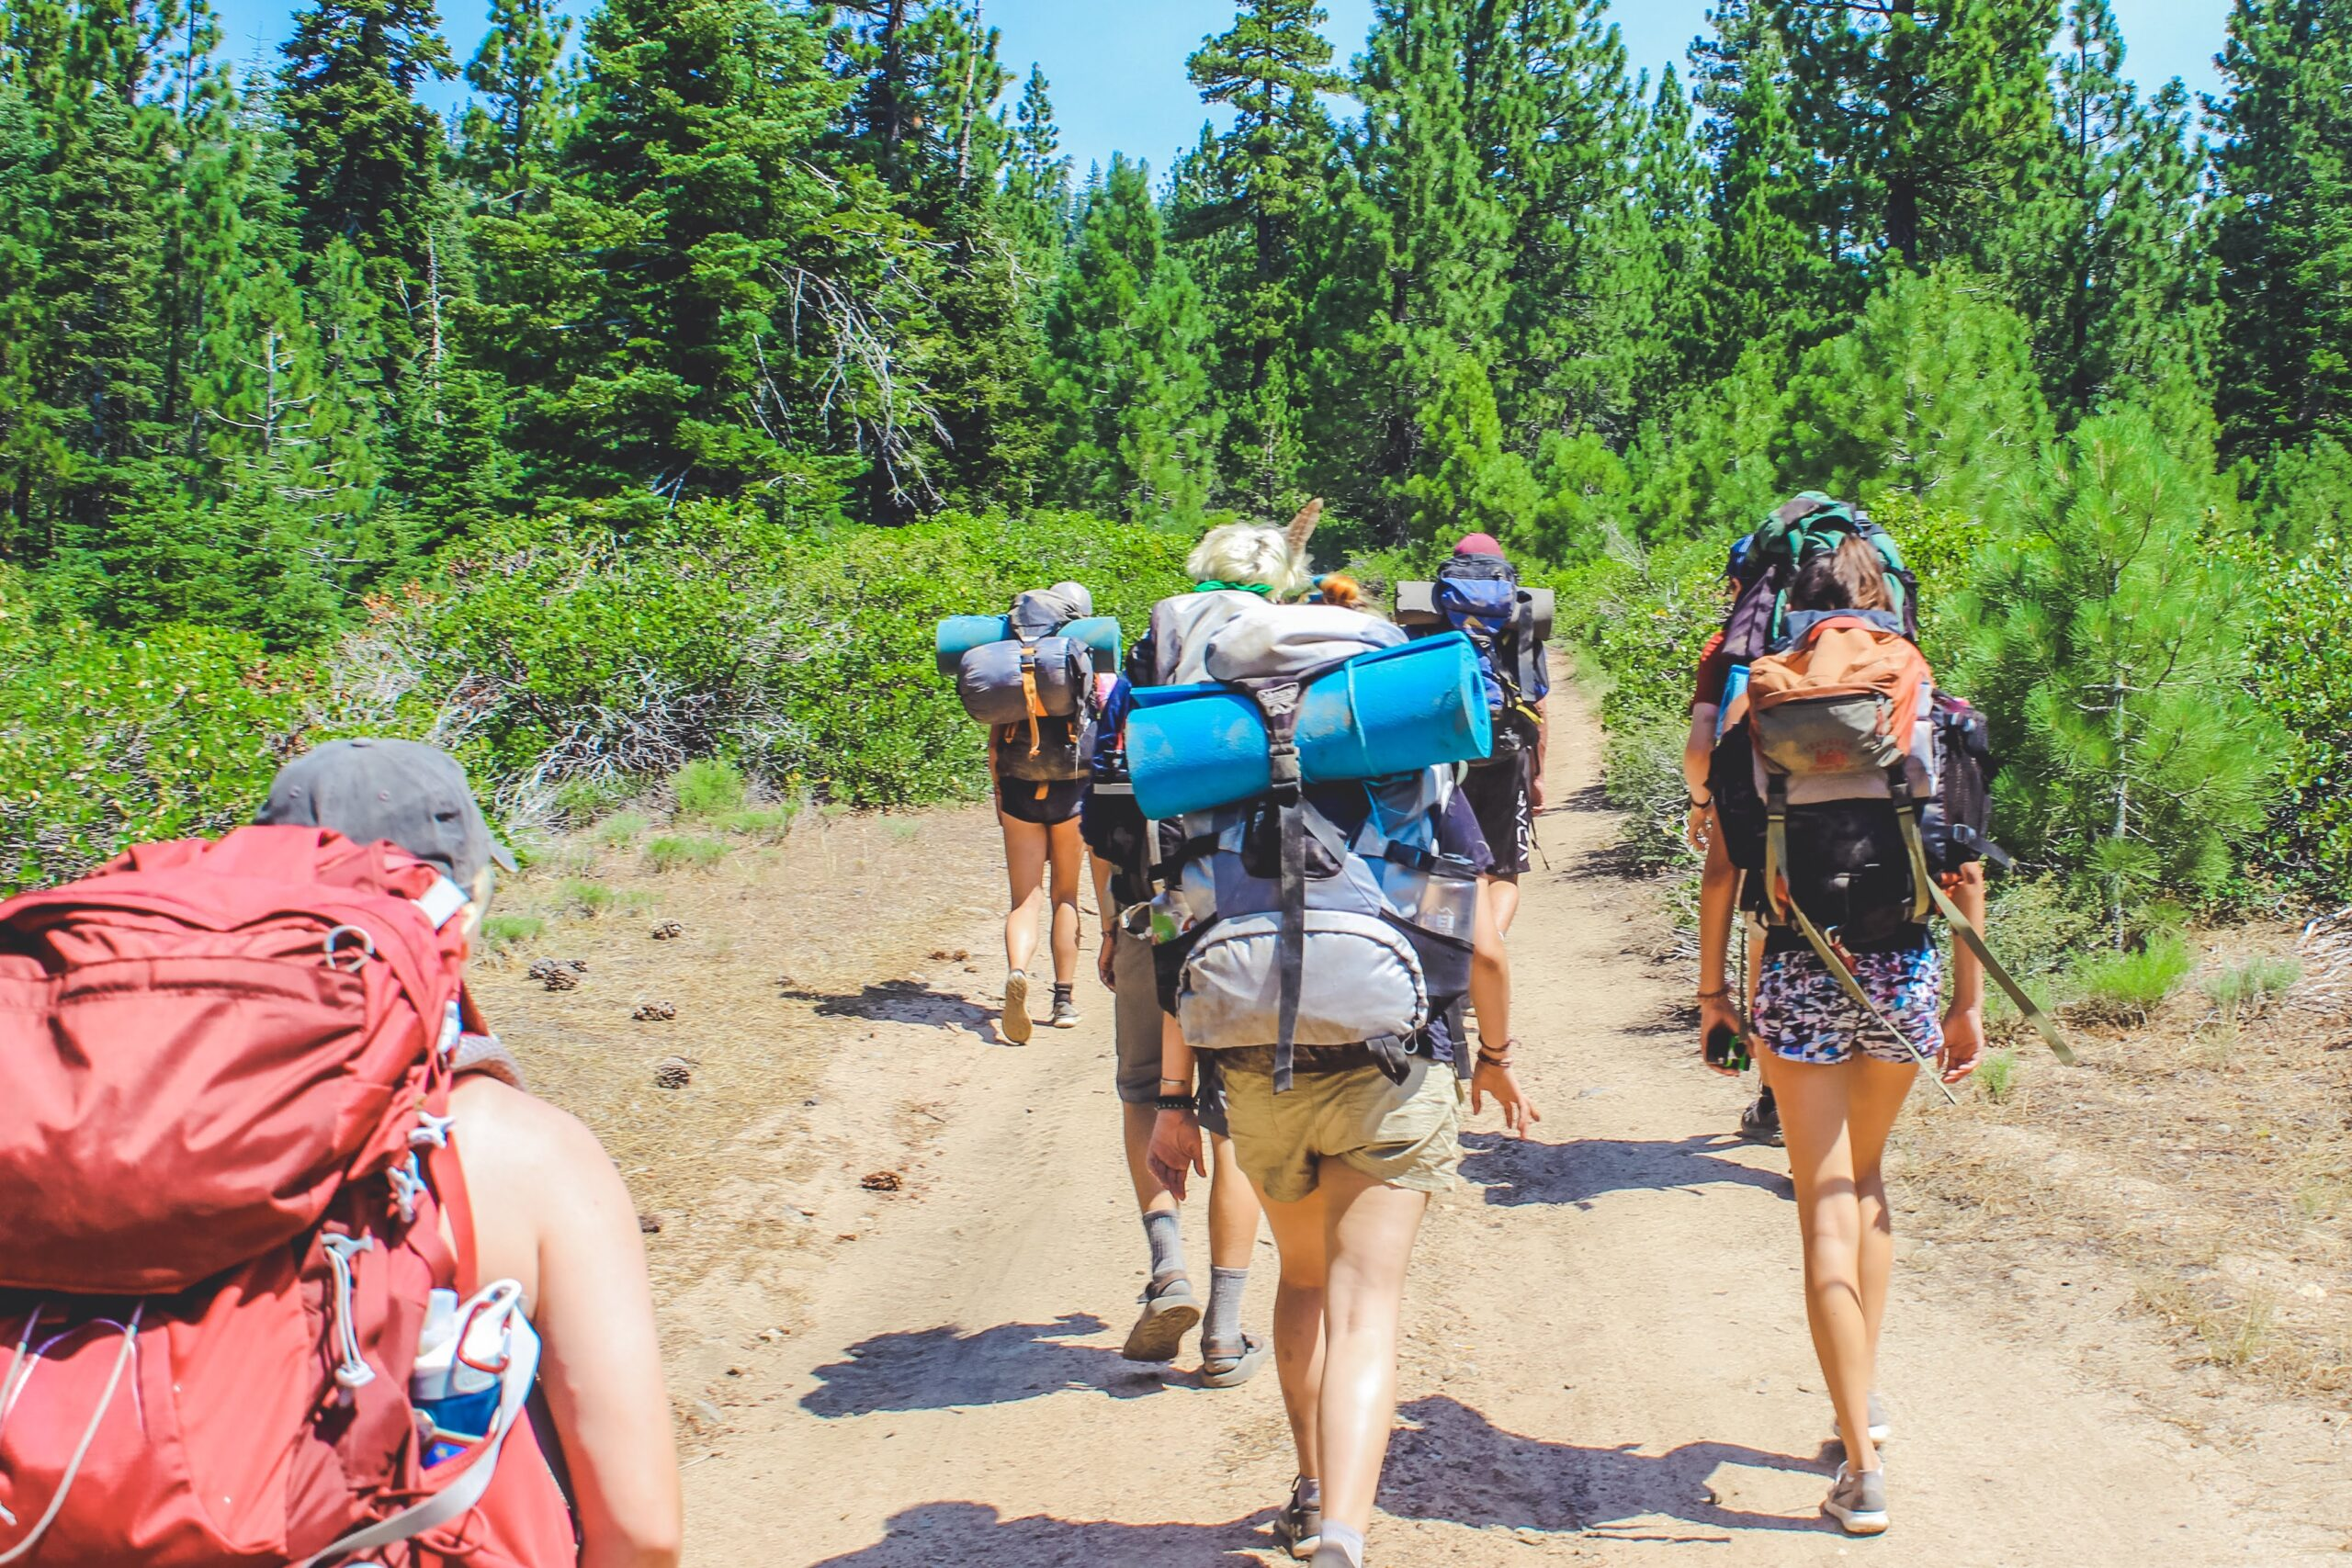 Backpacking: two night and three day hiking and camping trip for 13+ campers